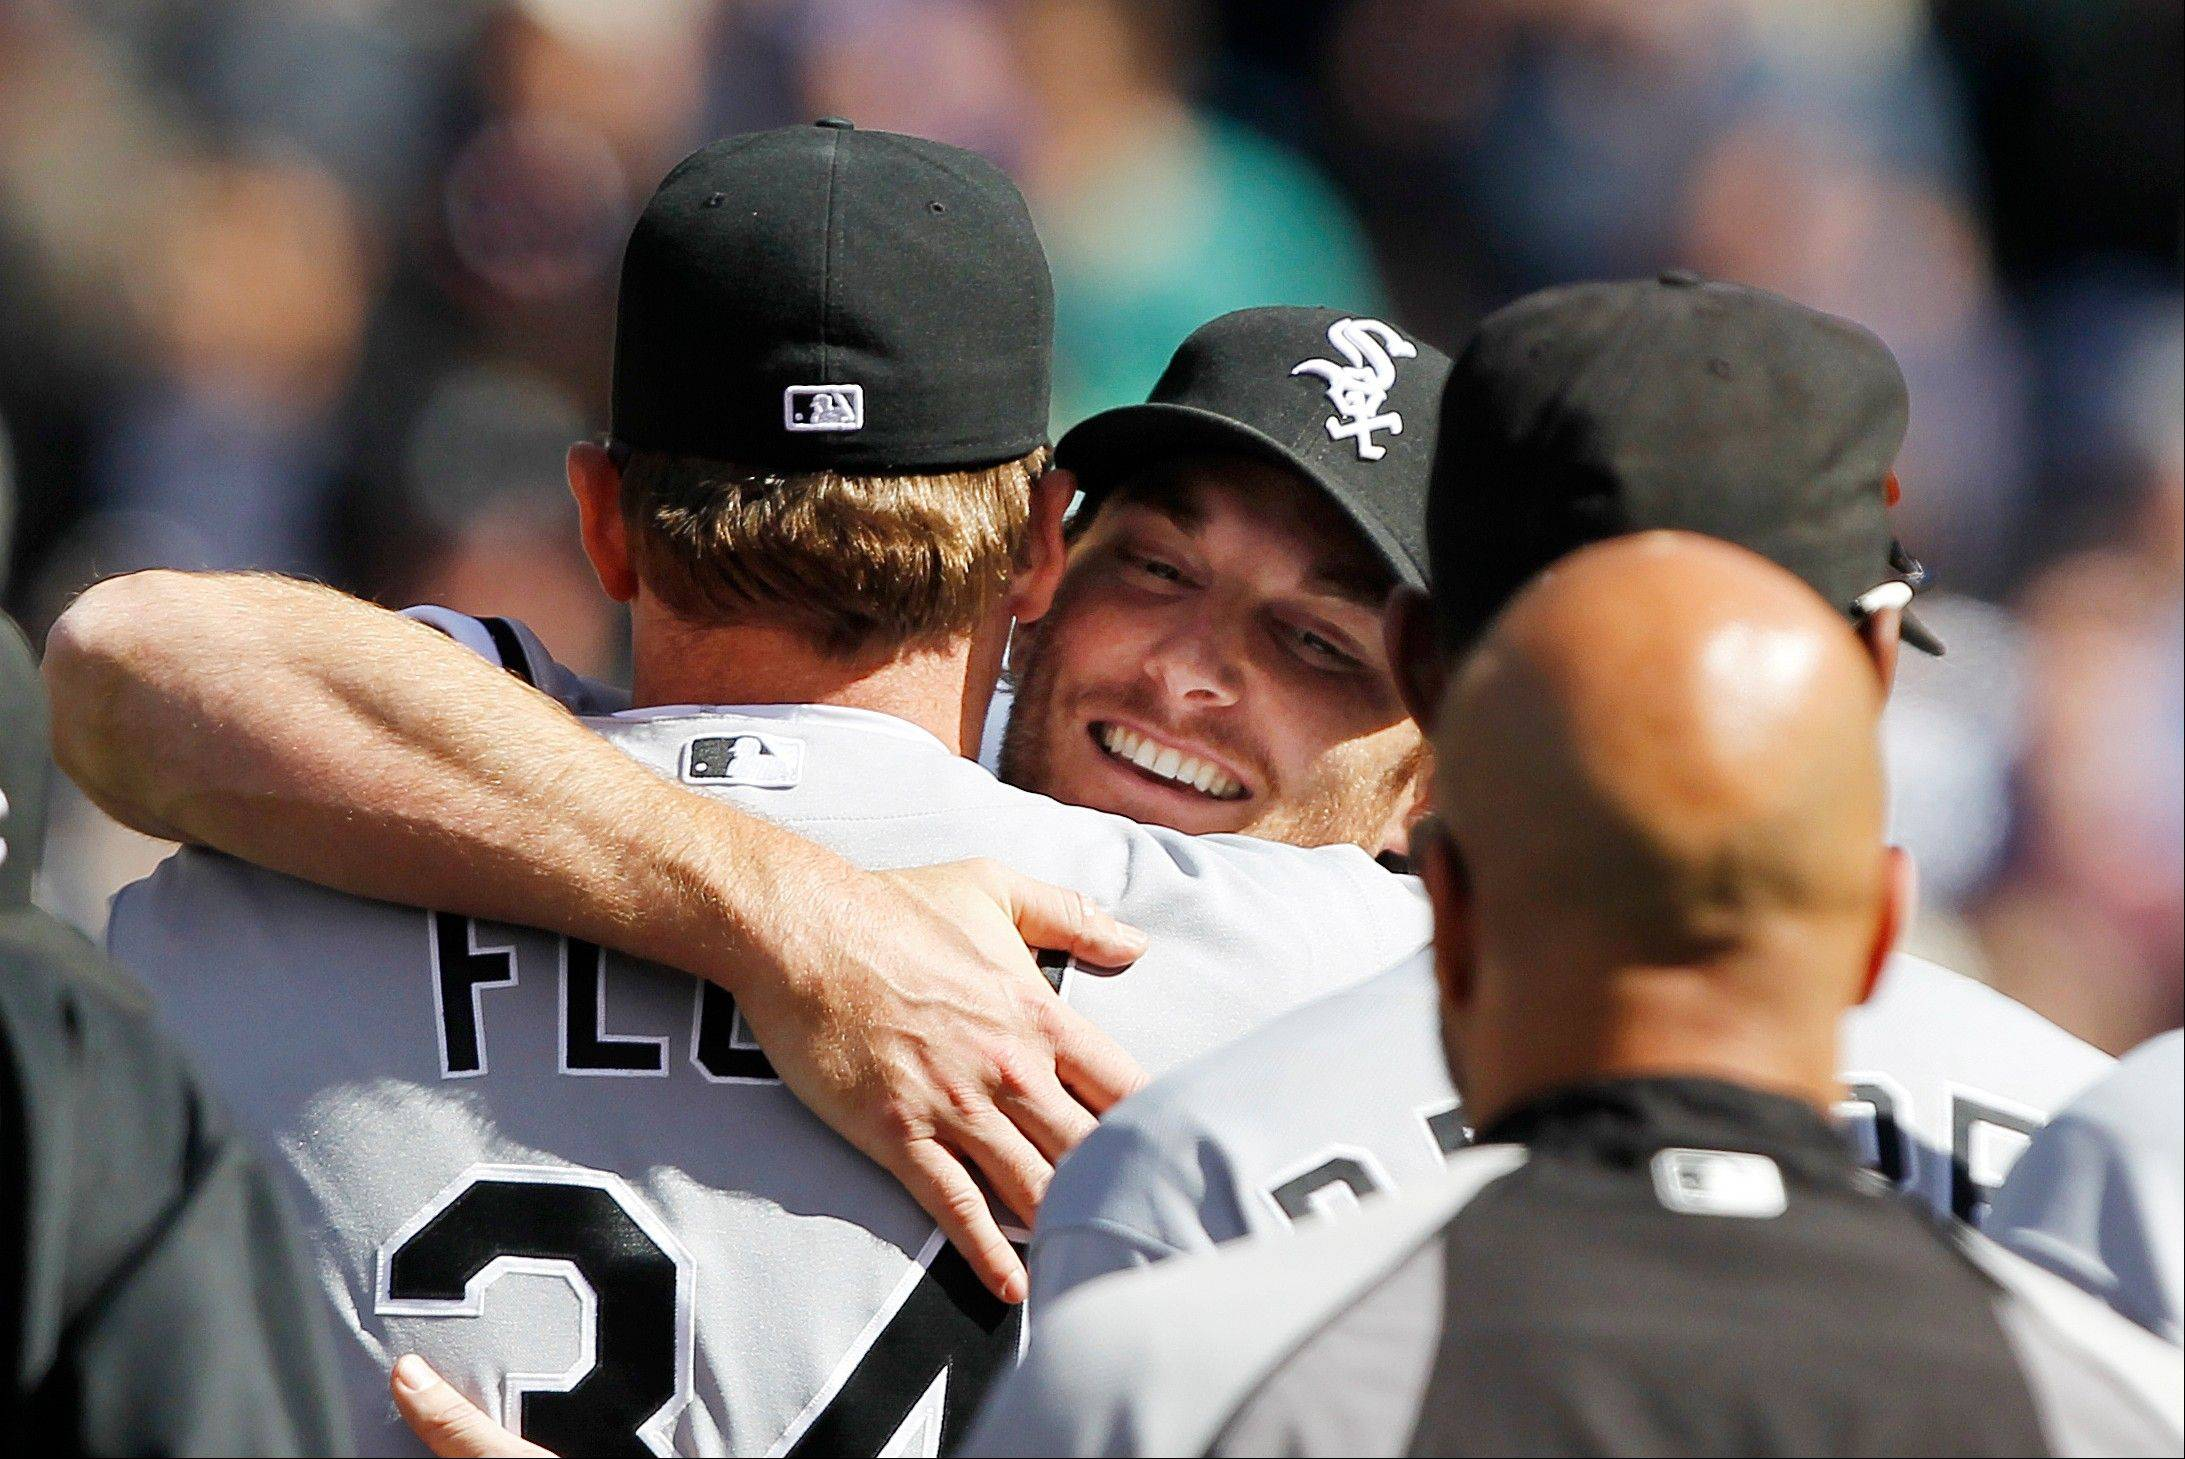 White Sox starting pitcher Philip Humber, center, is mobbed by teammates Saturday after pitching a perfect game against the Seattle Mariners in Seattle. The White Sox won 4-0.